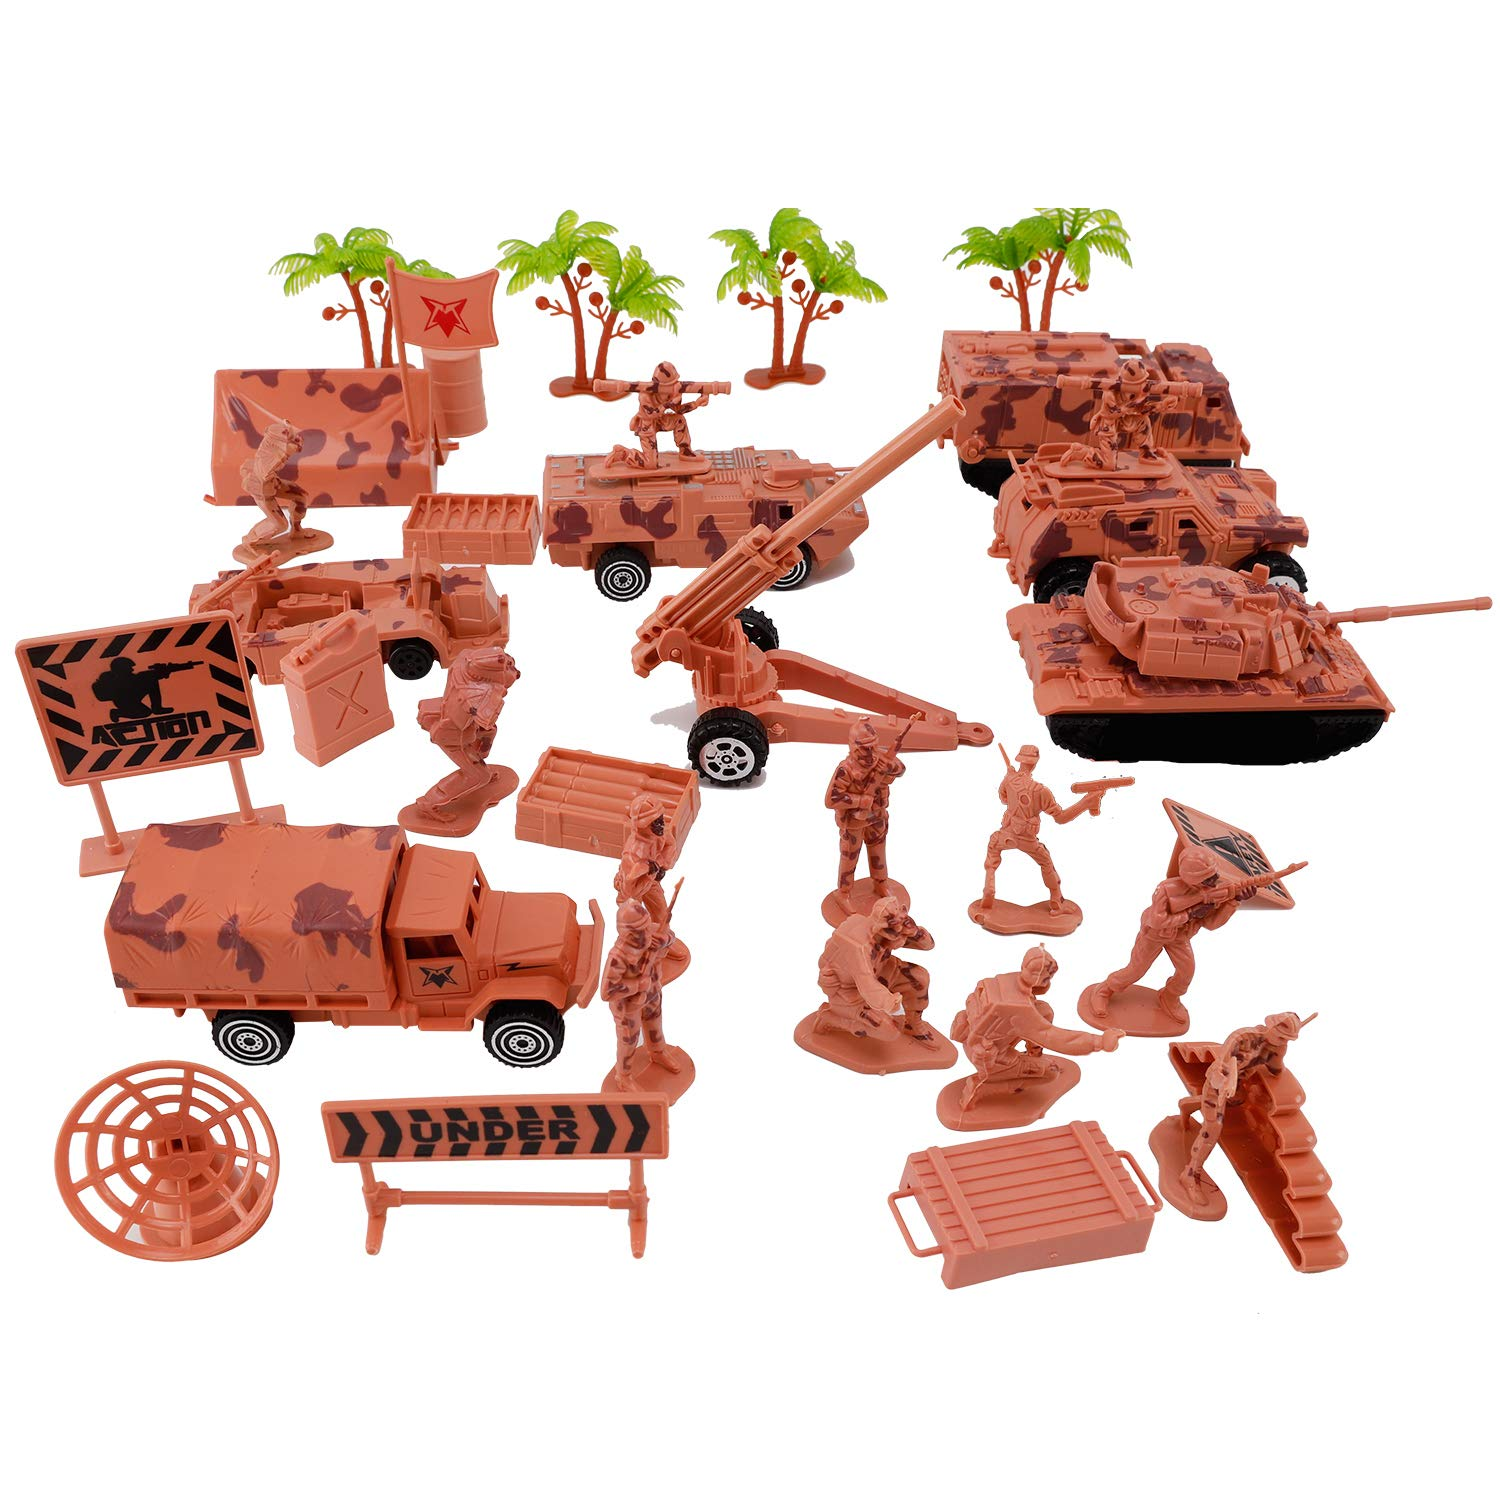 Liberty Imports Deluxe Action Figures Army Men Soldier Military Playset with Scaled Vehicles 73 pcs